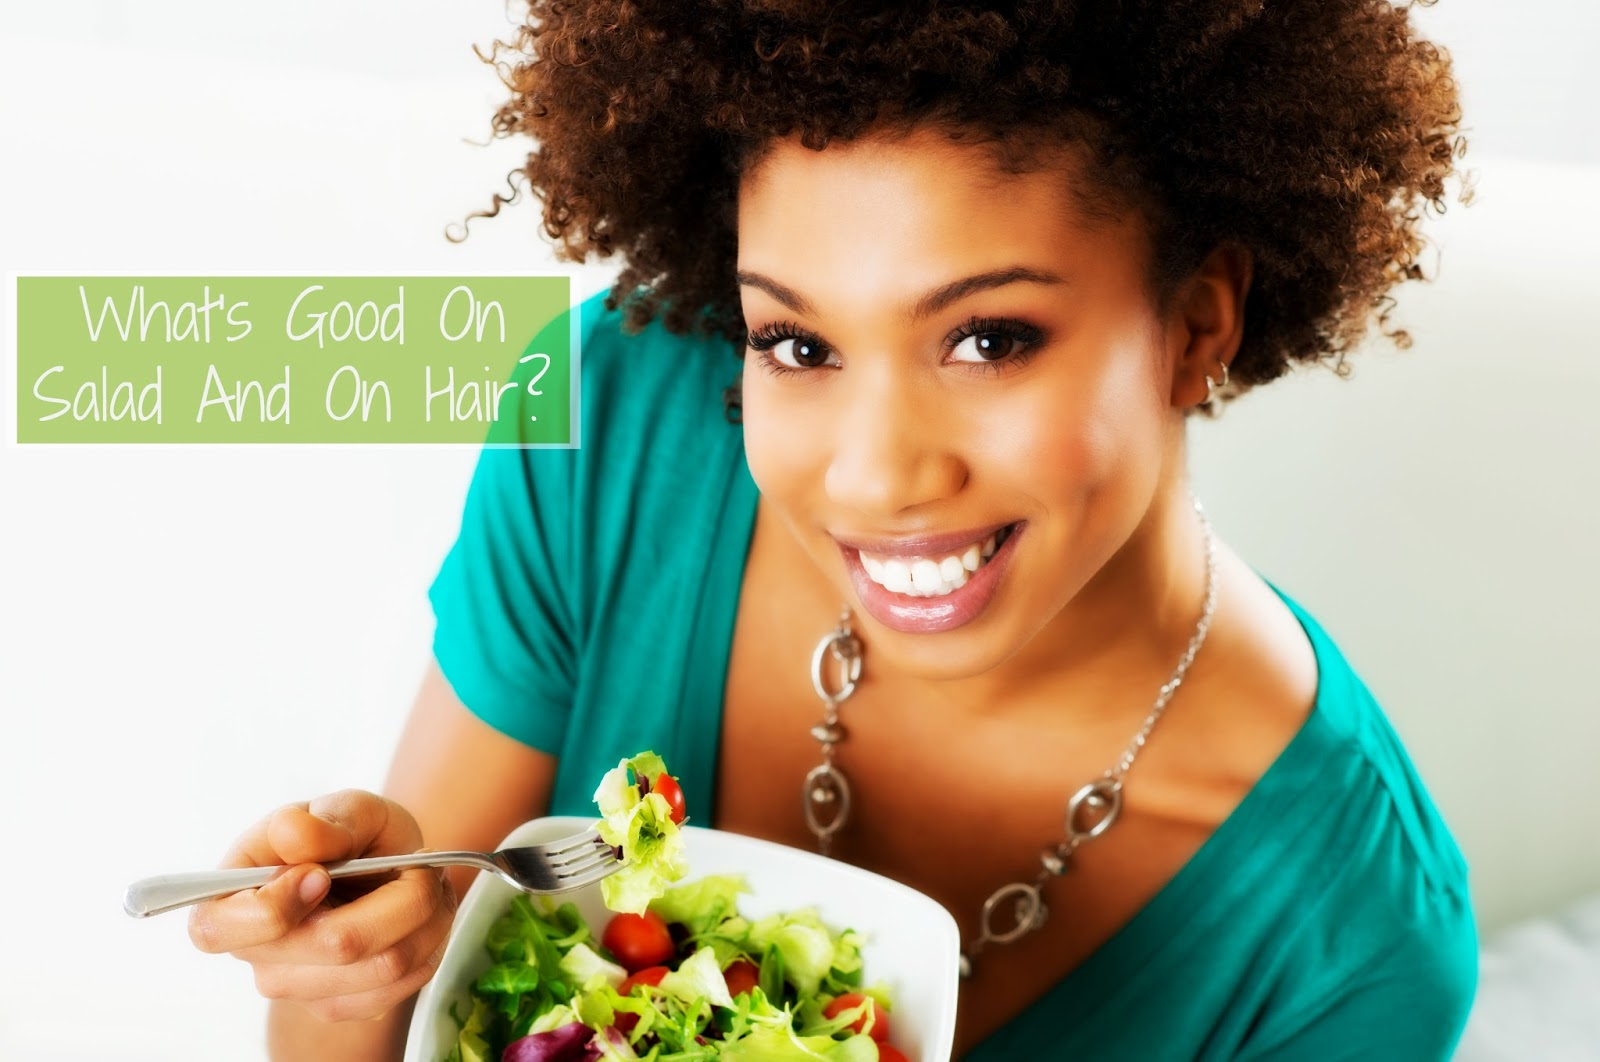 POP QUIZ: What's Good On Salad And On Hair? (Hint: It's Not Kale)